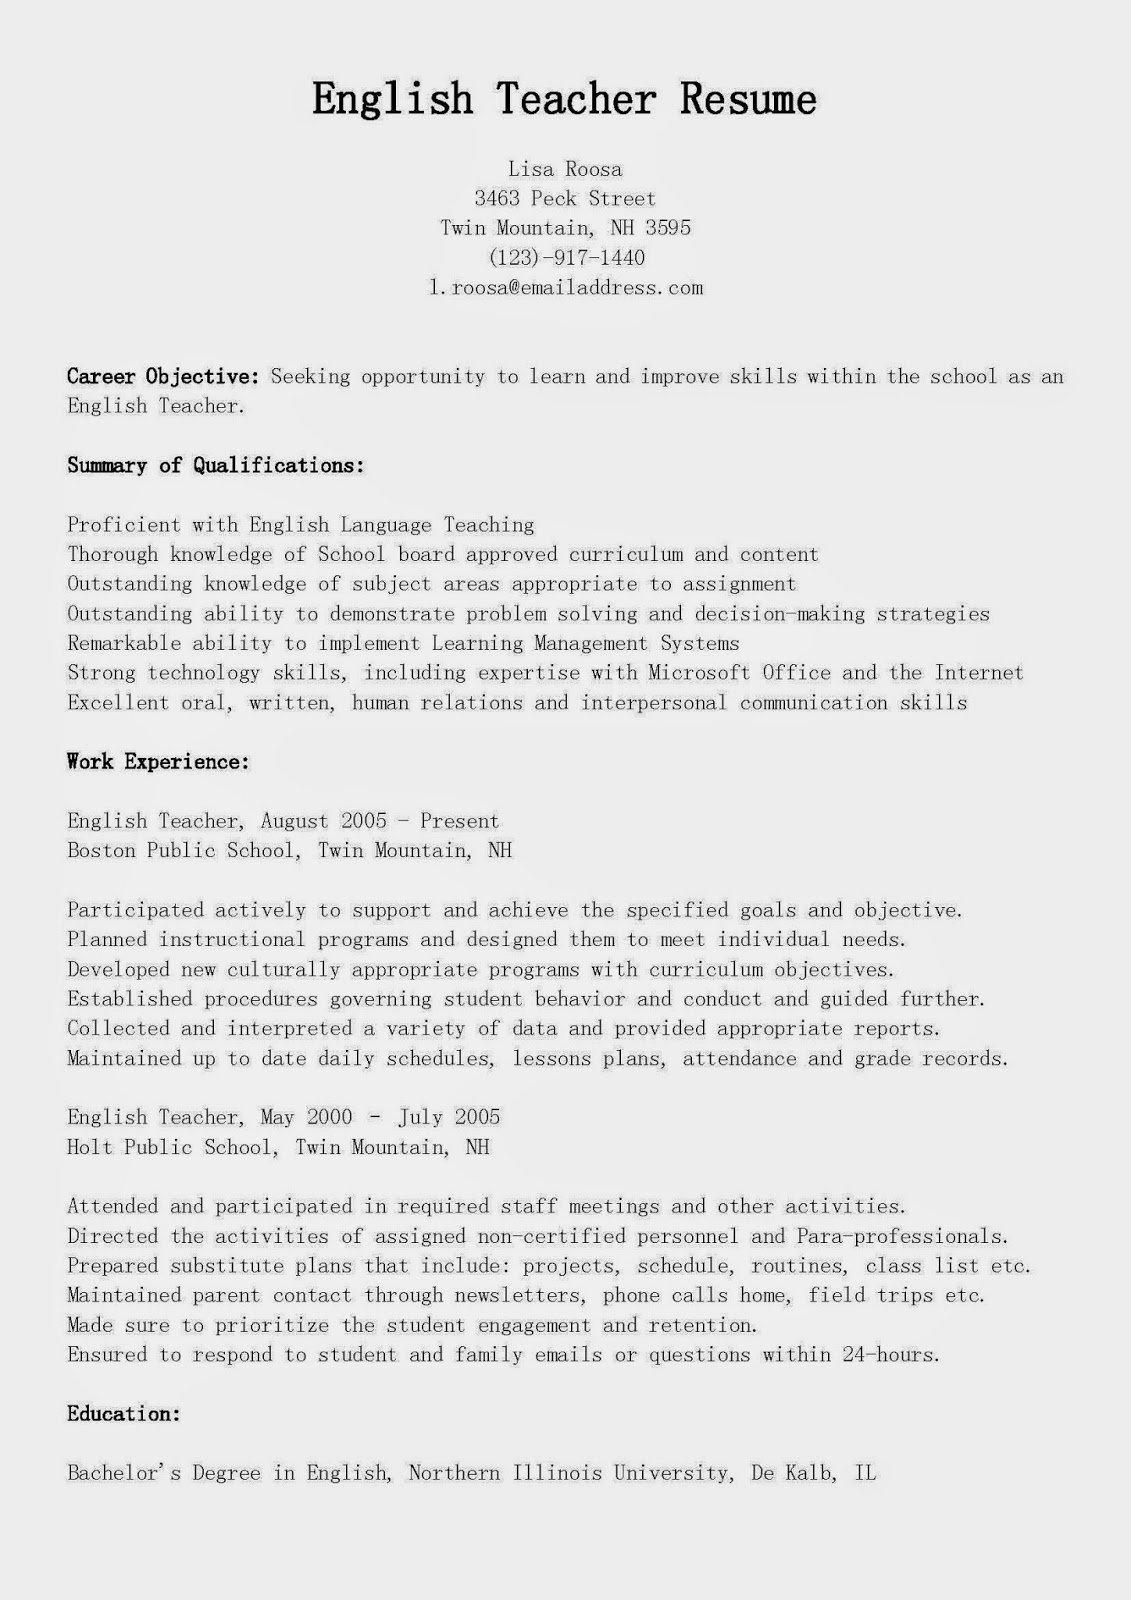 High School Chinese Teacher Resume